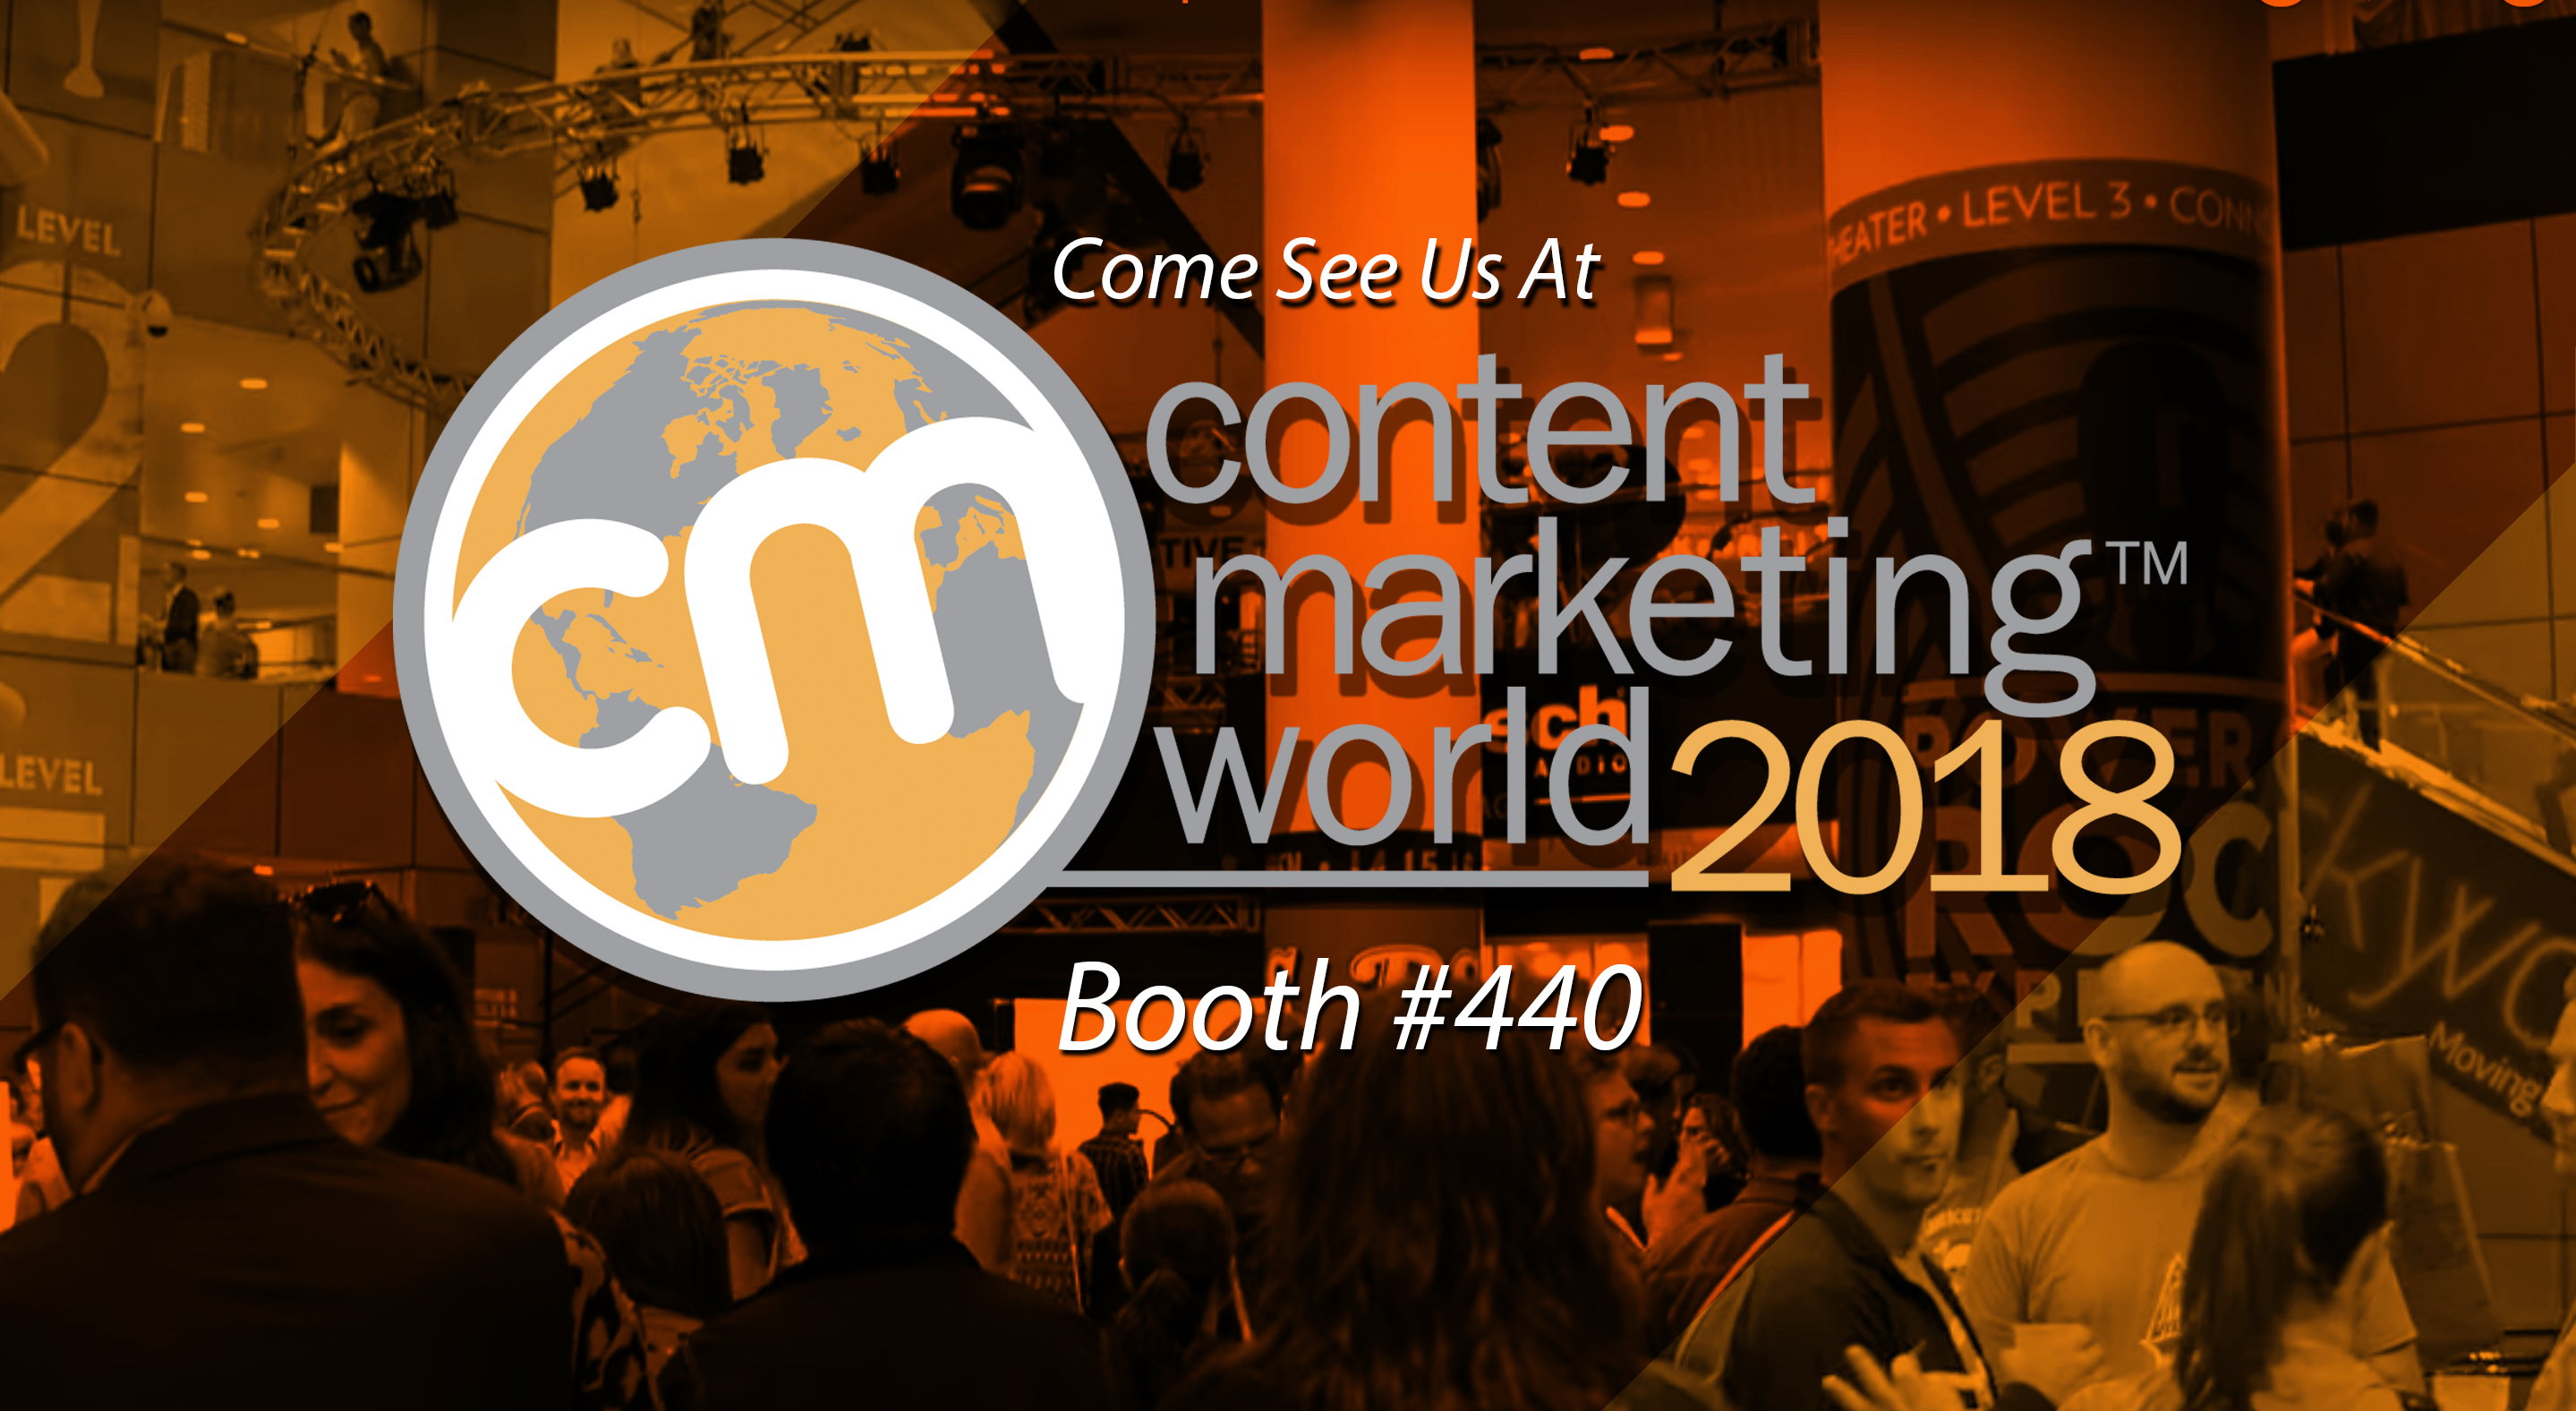 See Us At Content Marketing World To Discover The Impact of Whitepaper and Digital Marketing - bython